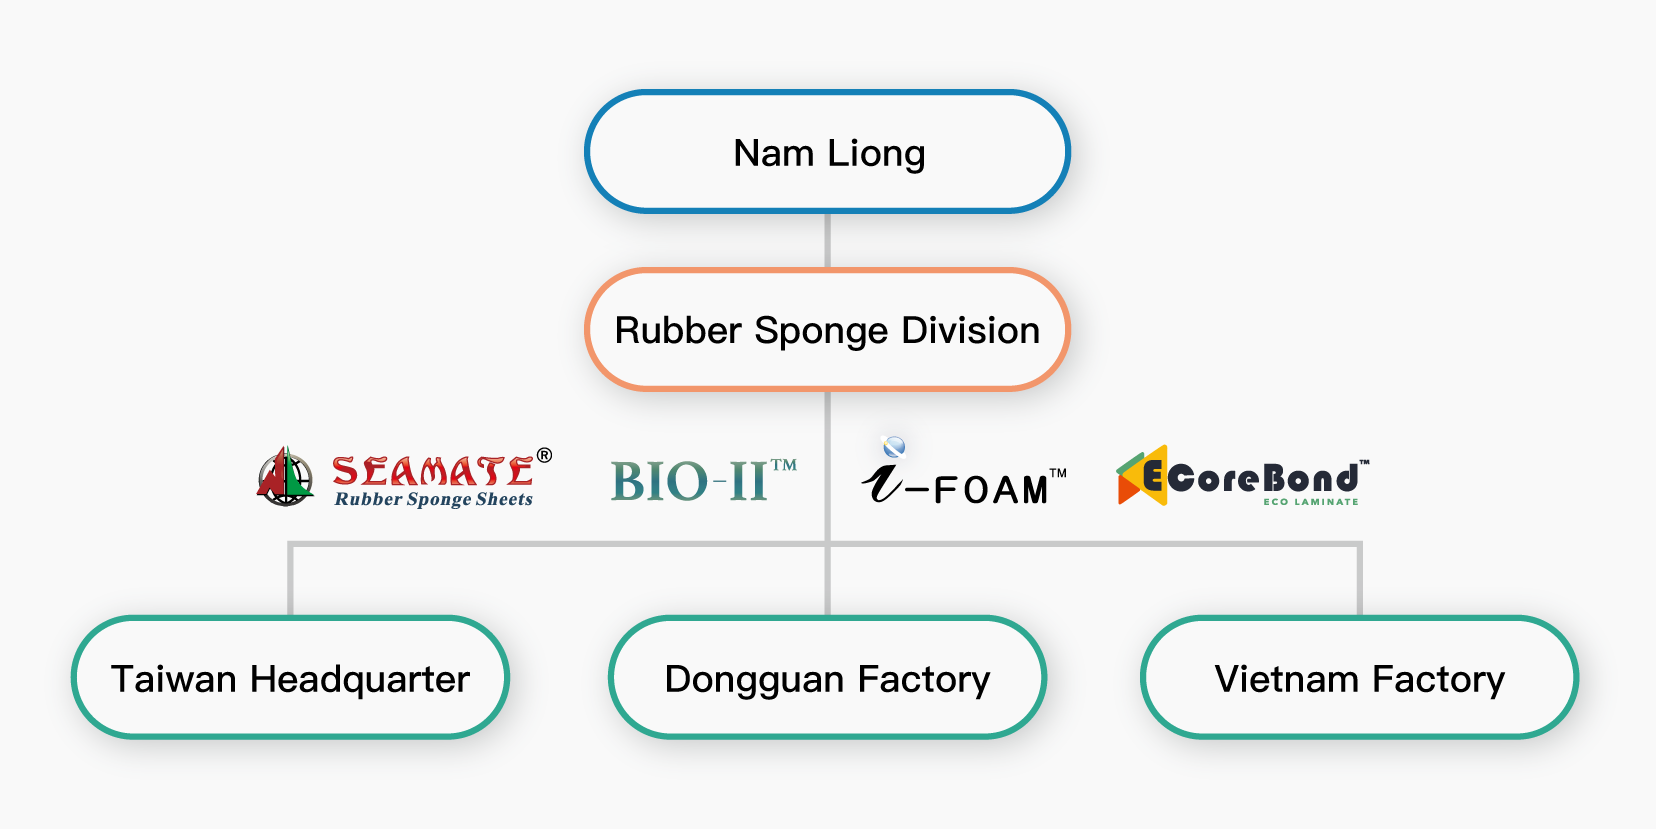 Rubber Sponge organization and brand names